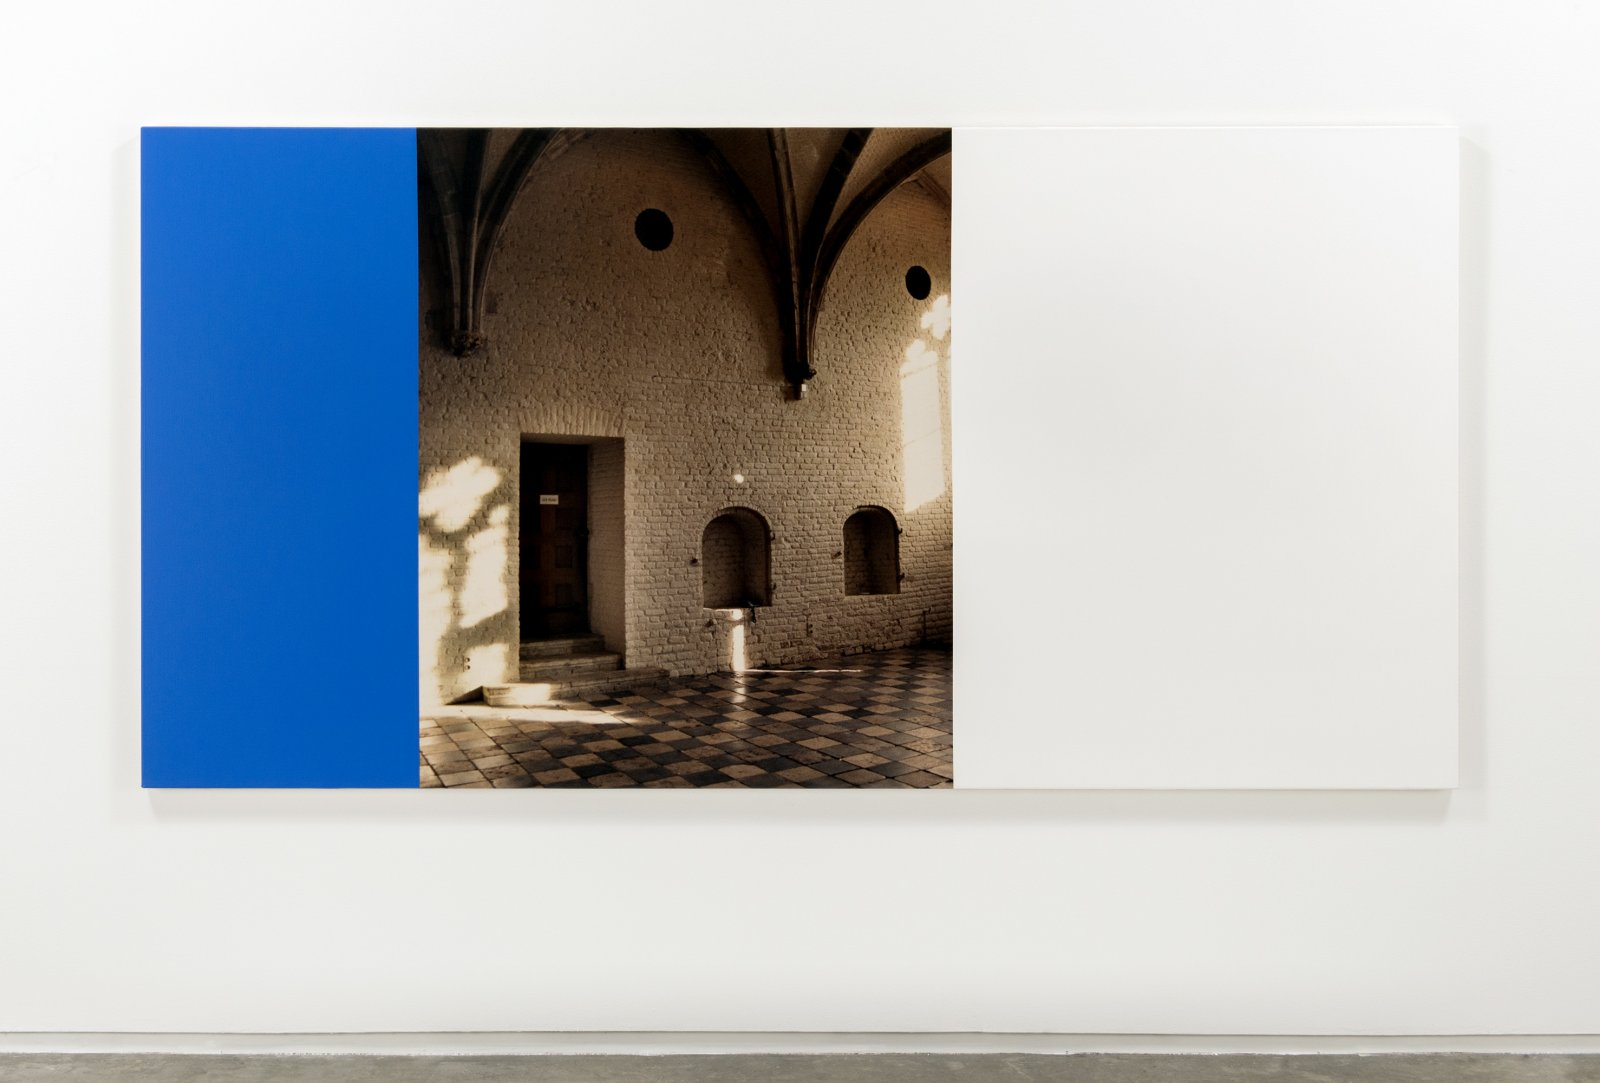 Ian Wallace,Hommage a MondrianI(The Vleeshal Middleburg), 1990, photolaminate and acrylic on canvas, 48 x 96 in. (122 x 244 cm)